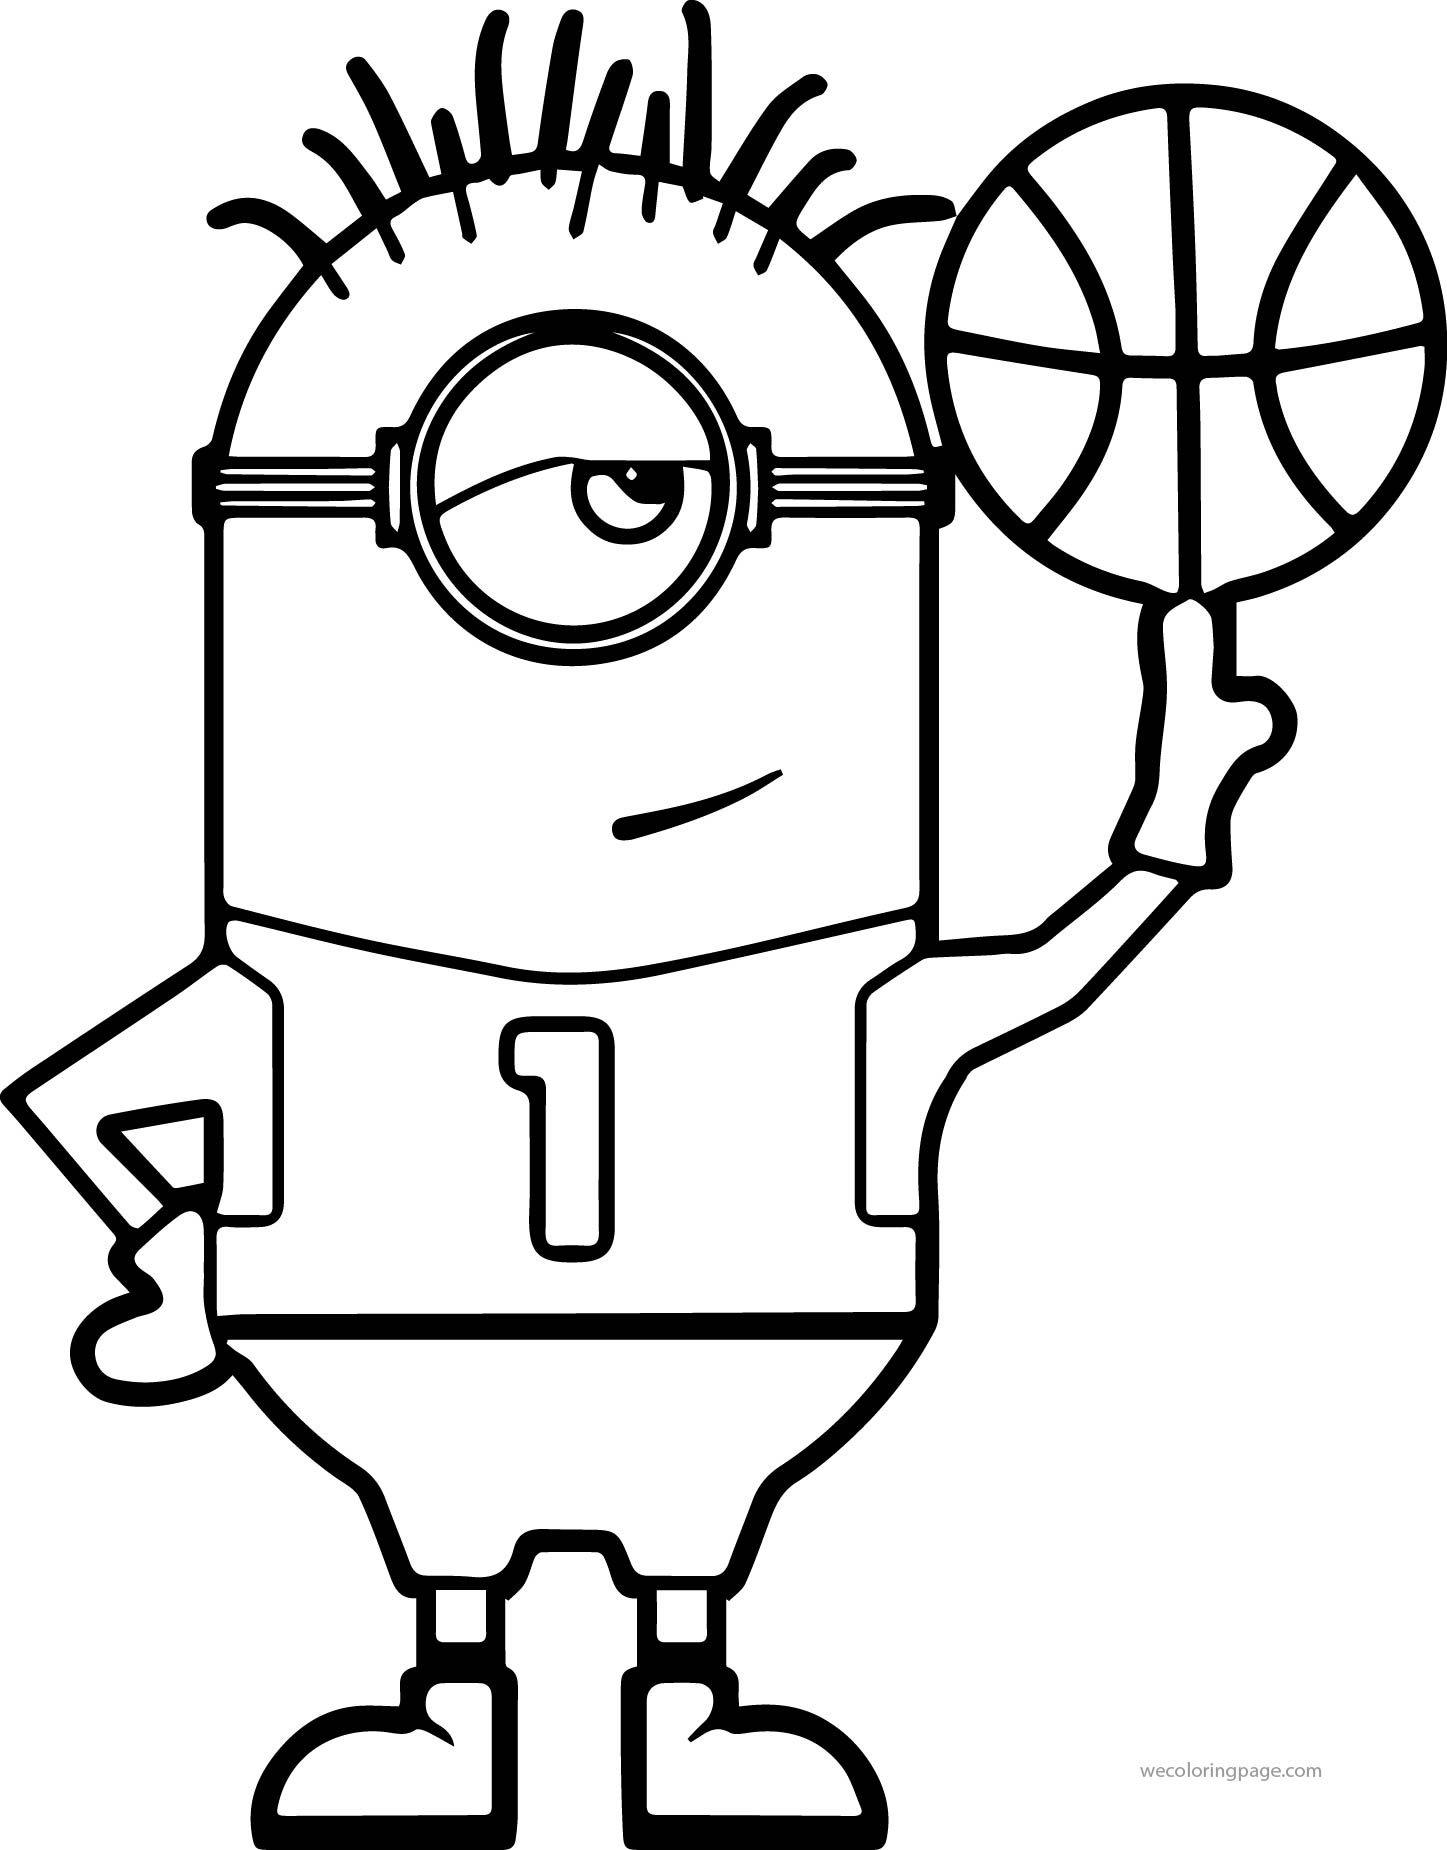 Minion Coloring Pages Football Coloring Coloring Pages